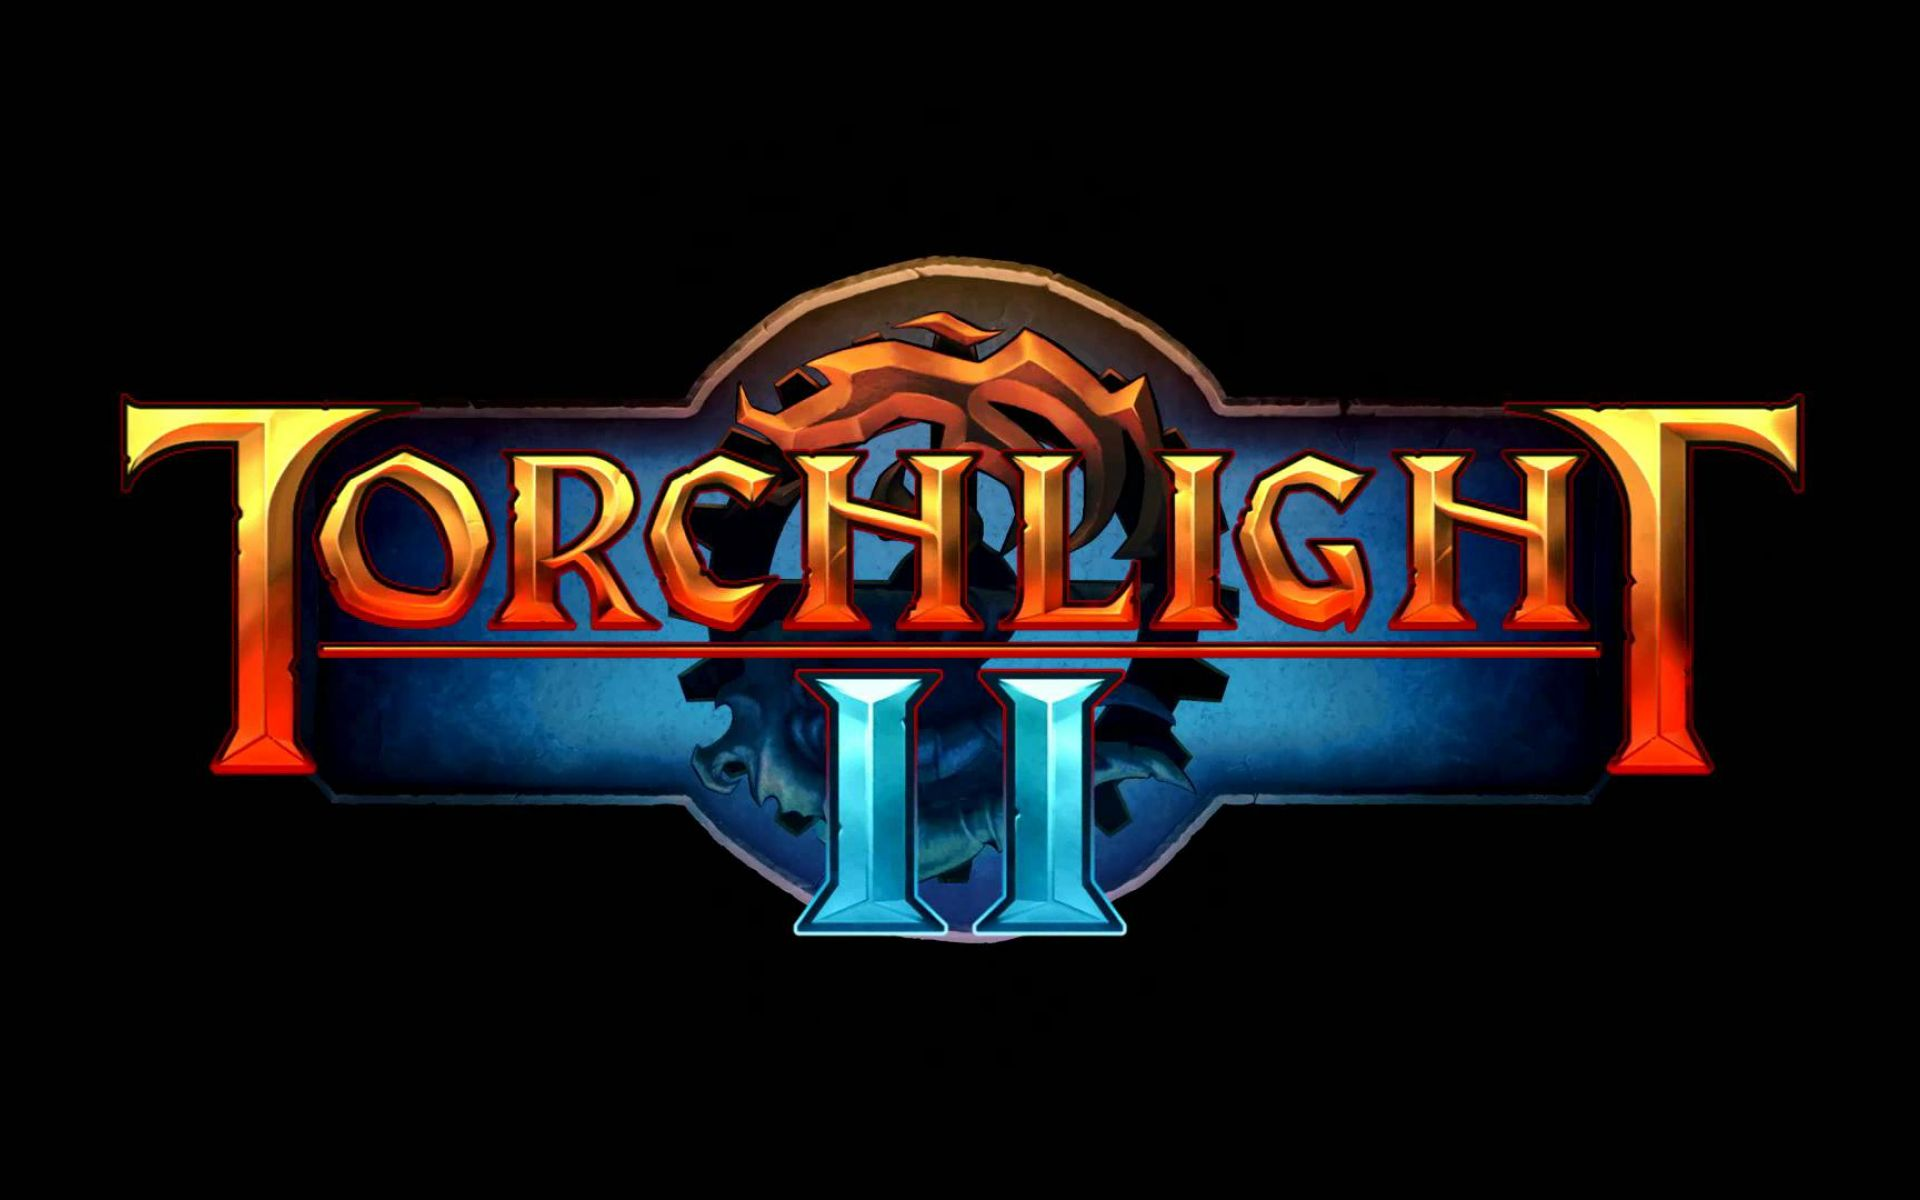 torchlight ii logo wallpaper 68590